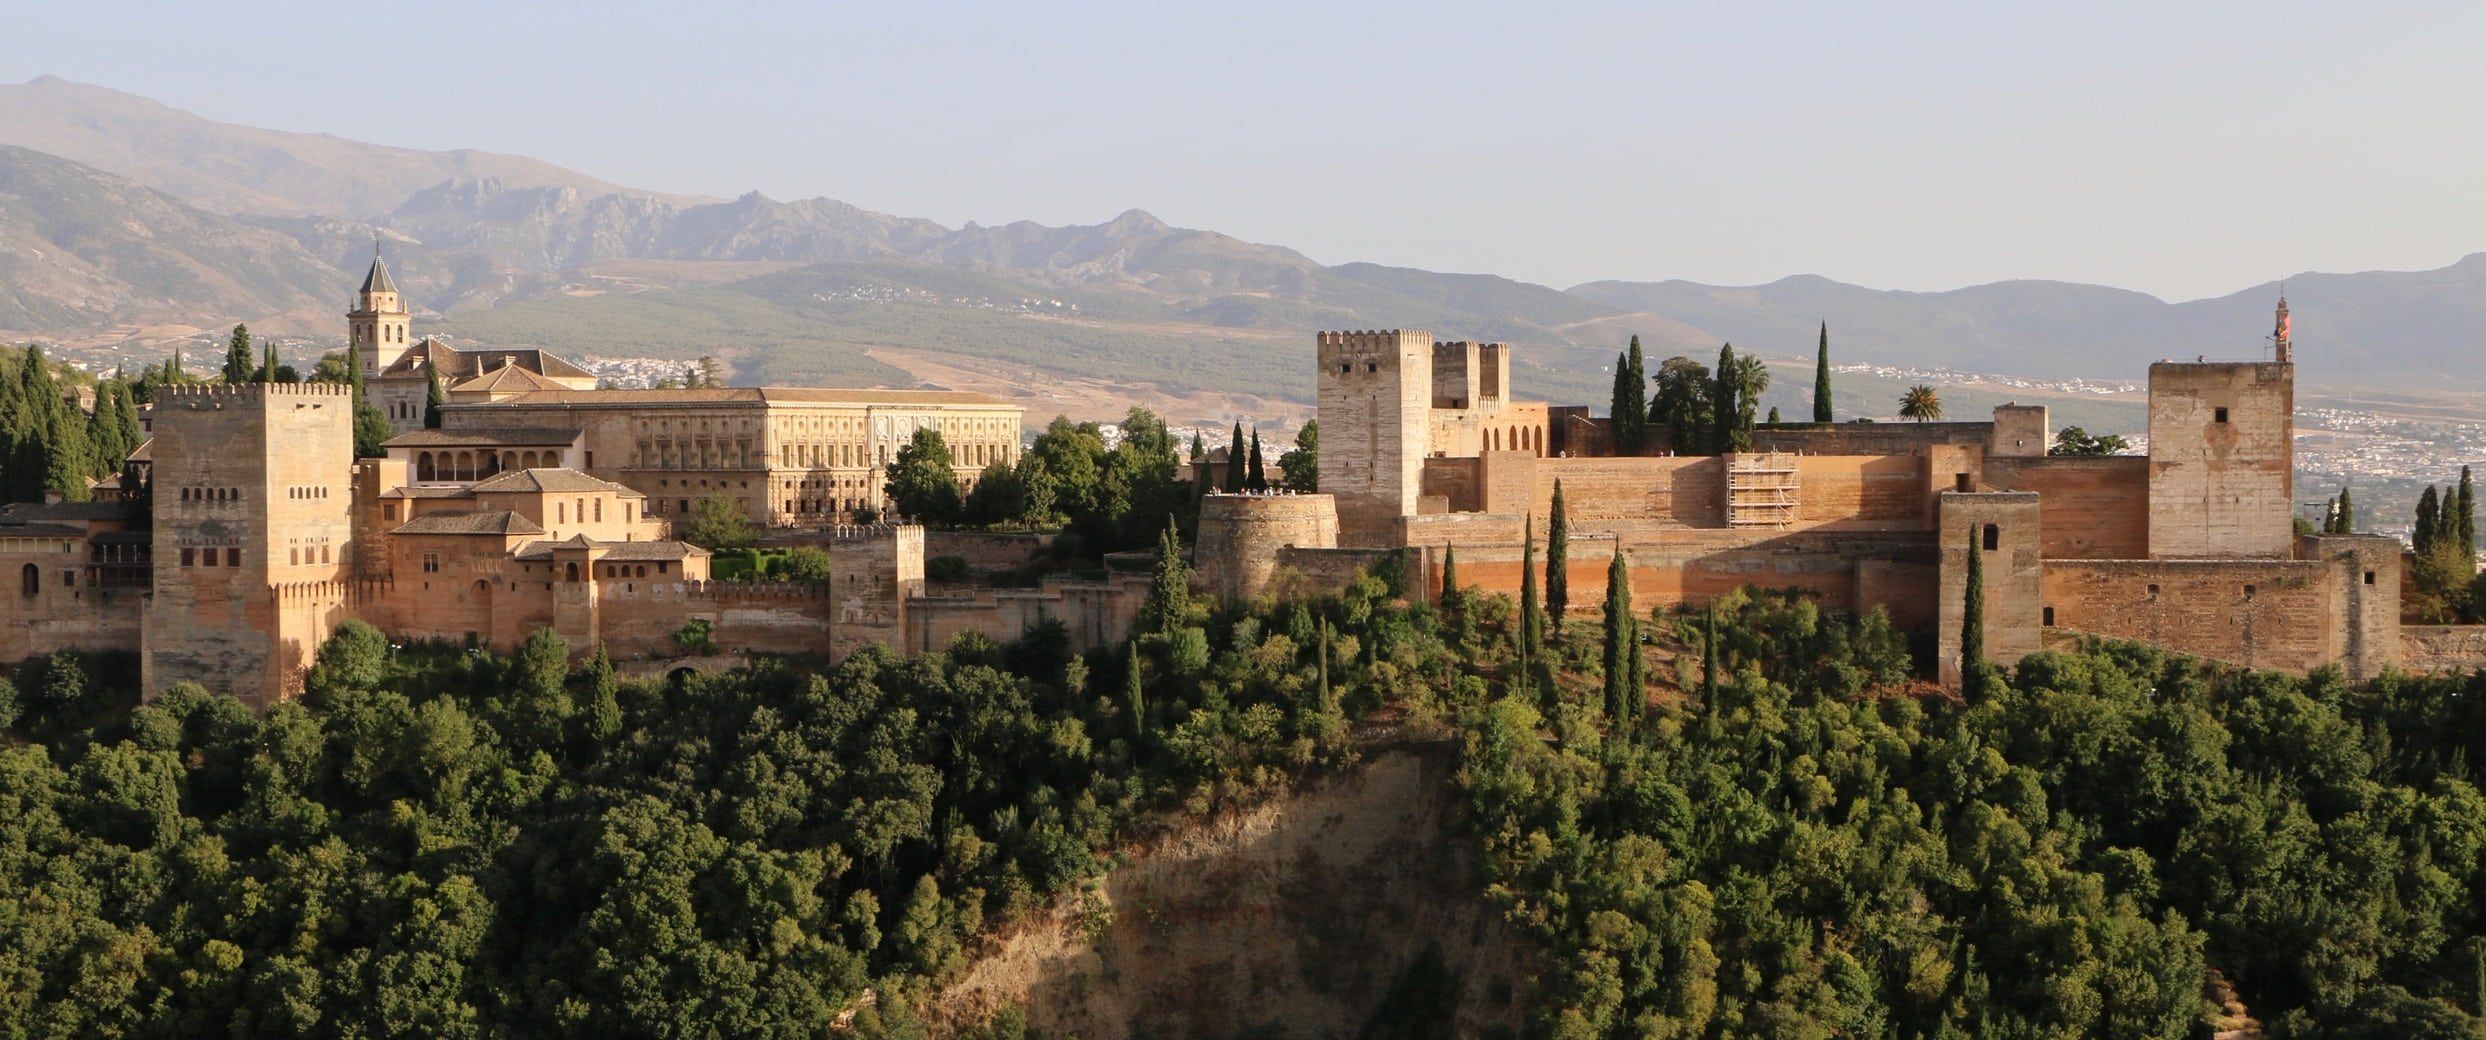 Image of Alhambra